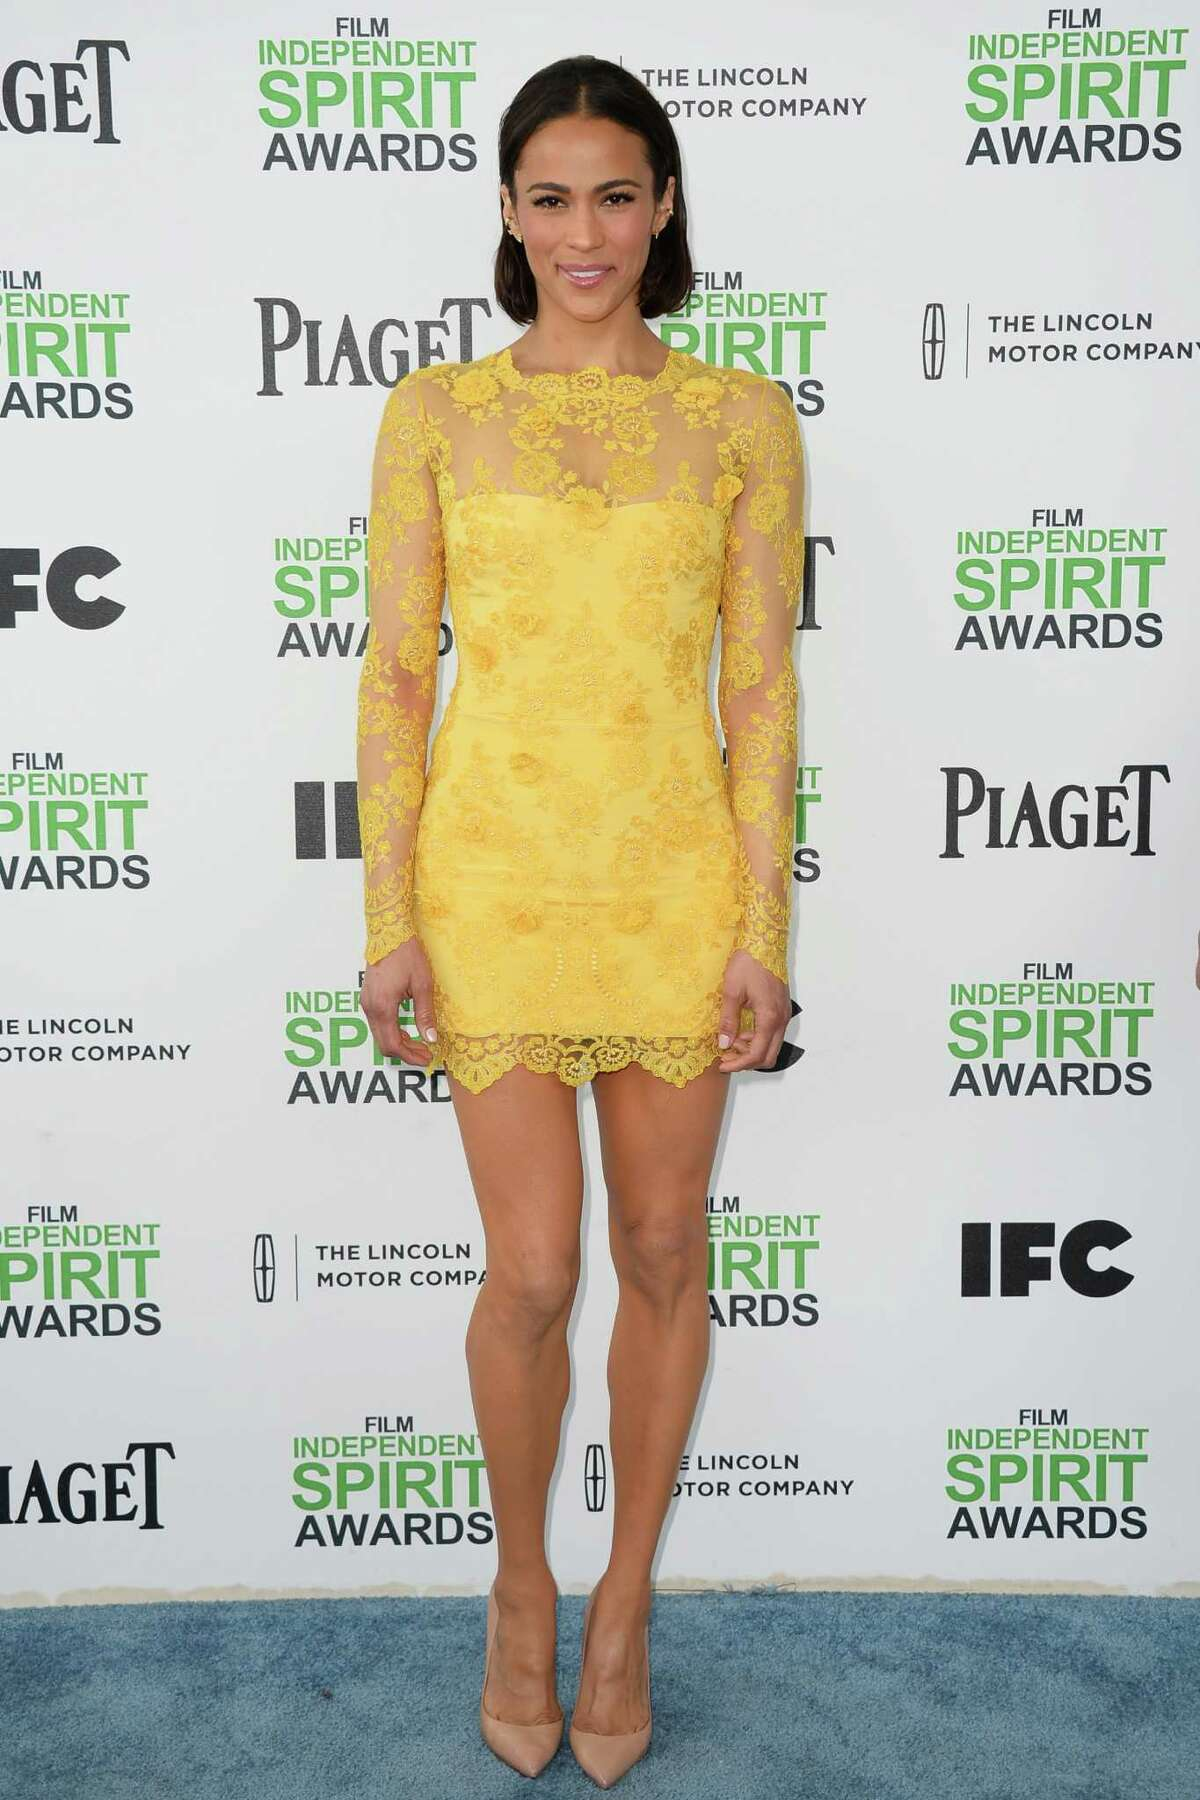 Paula Patton arrives at the 2014 Film Independent Spirit Awards in Santa Monica, Calif., on Saturday, Mar. 1, 2014. The event's website says it